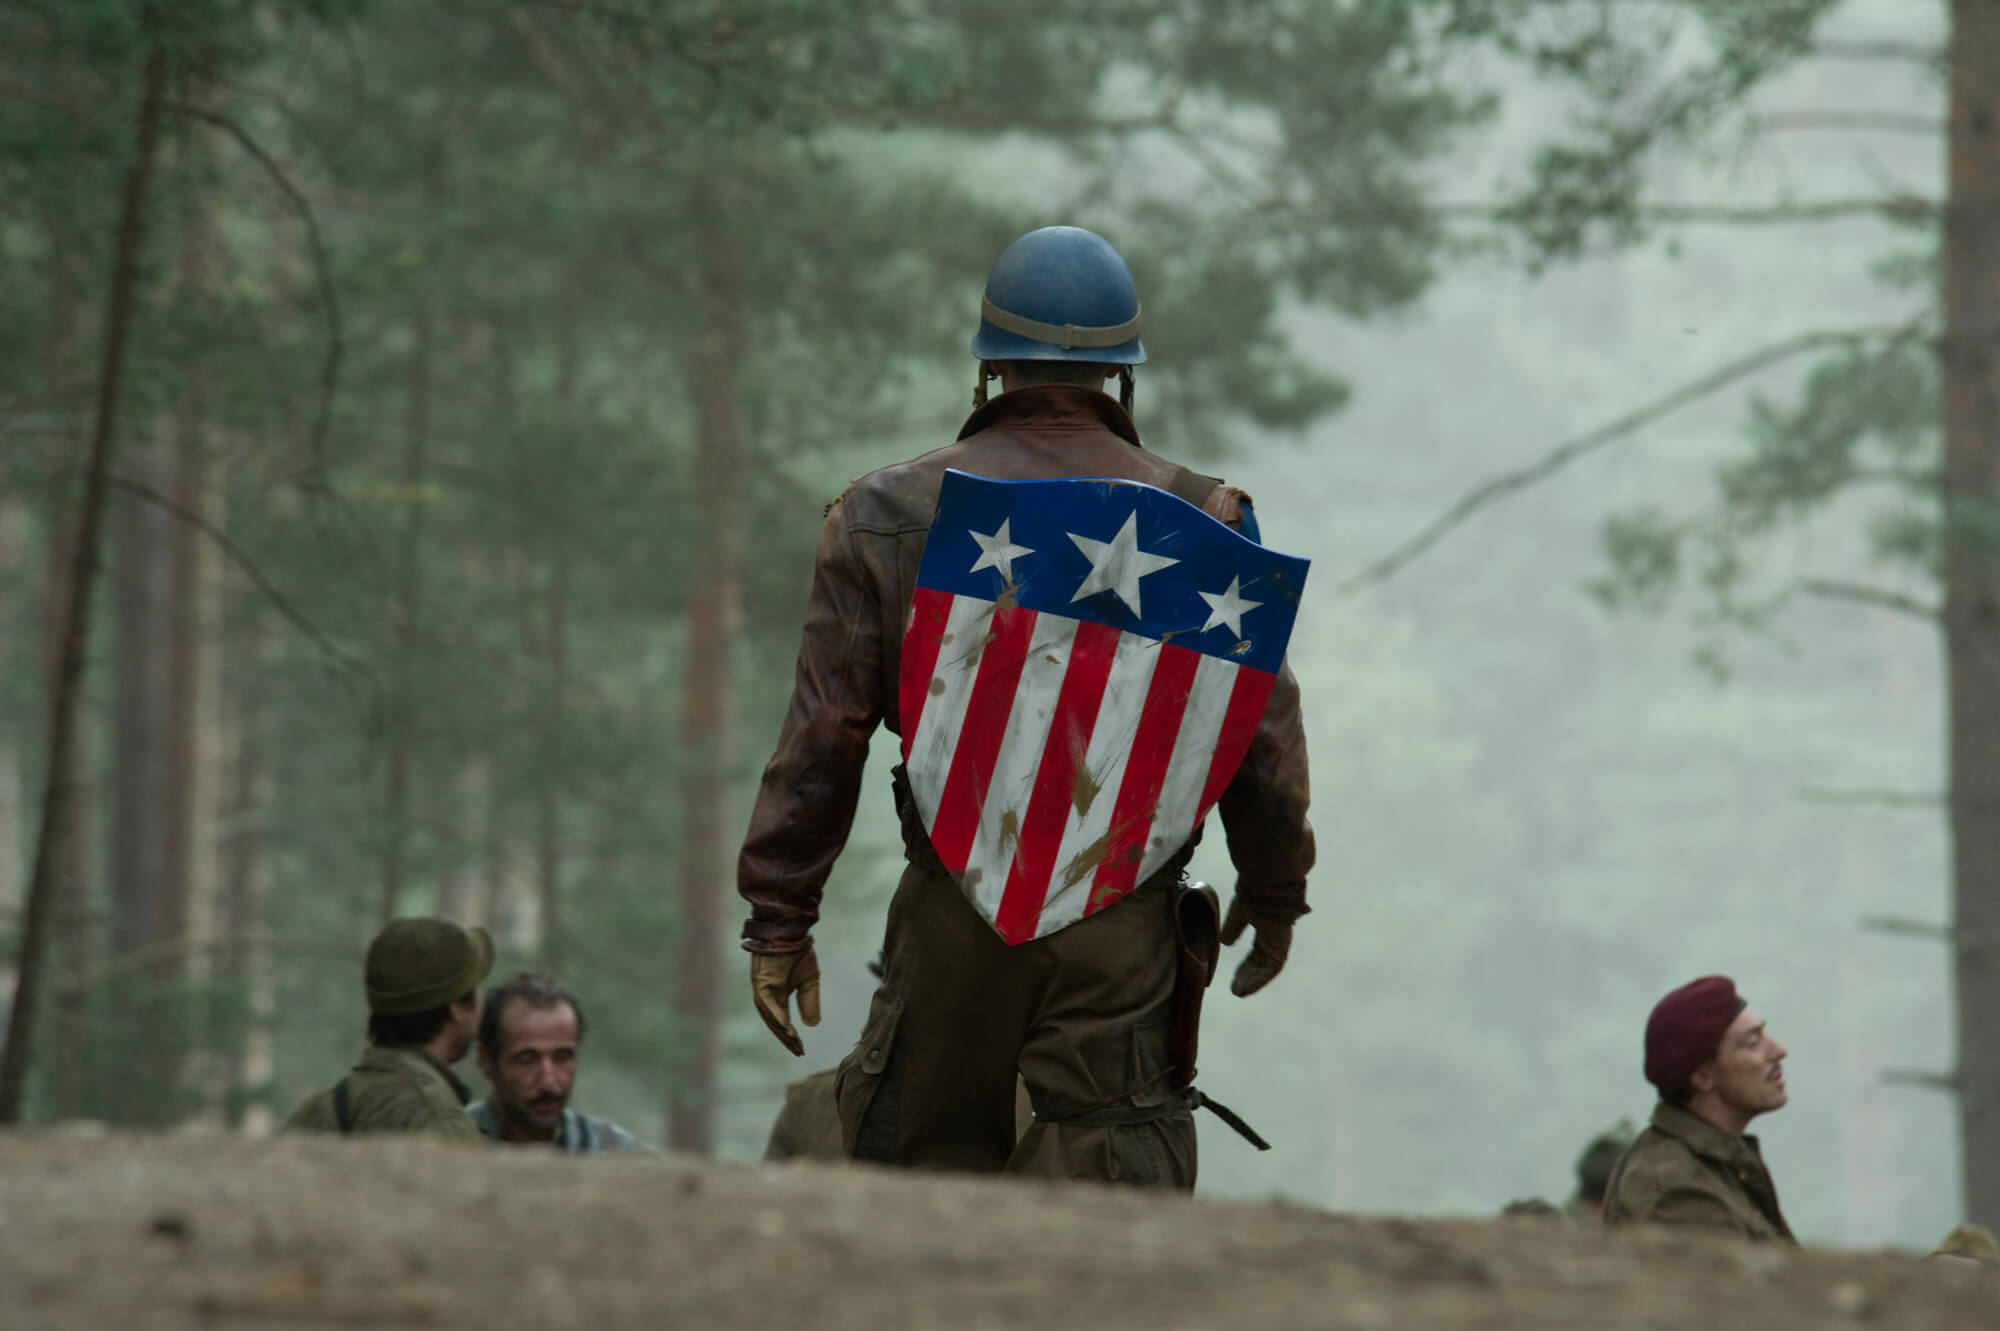 best superhero movies - captain america first avenger (1)